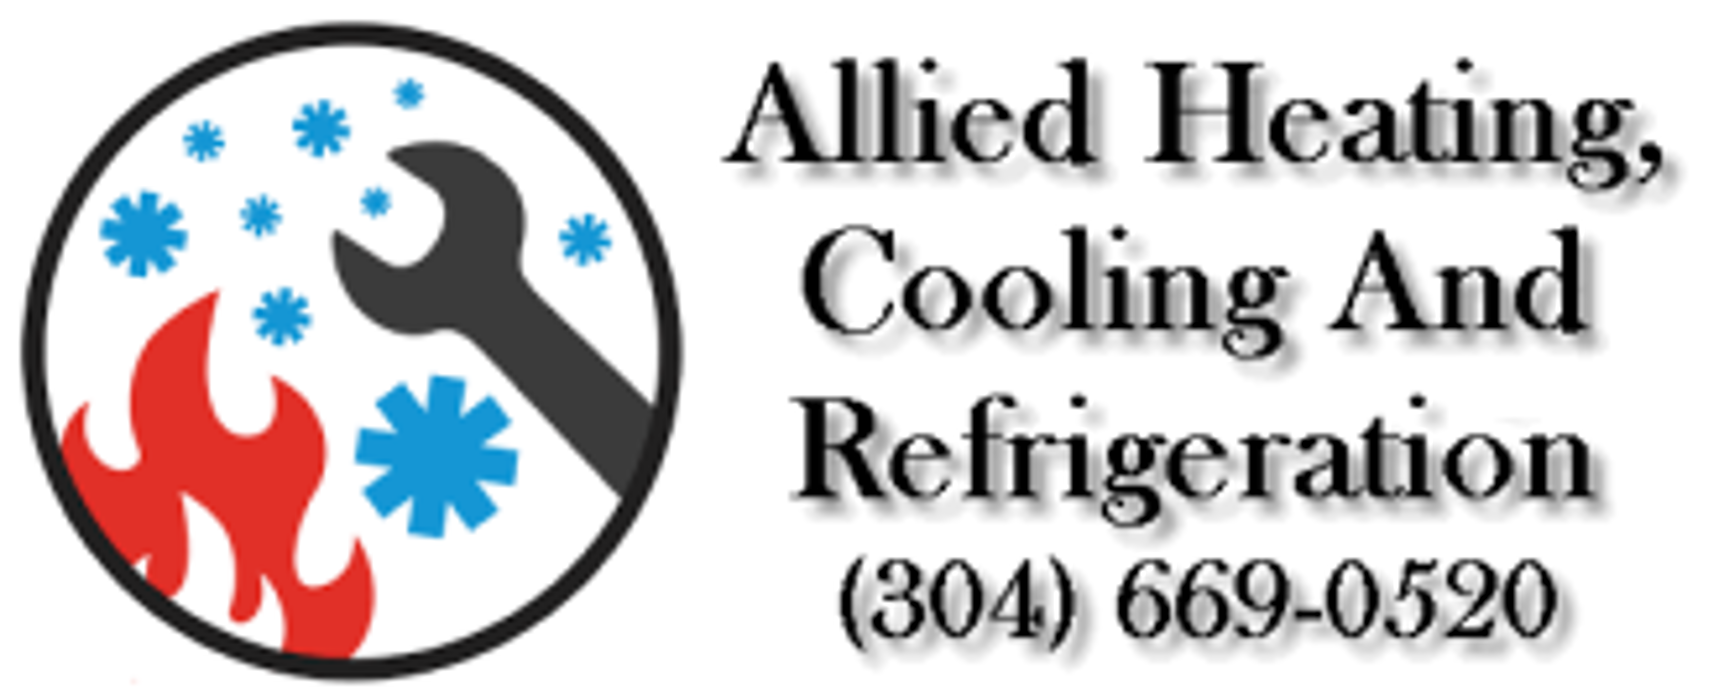 Allied Heating Cooling & Refrigeration, Inc. - Fairmont, WV